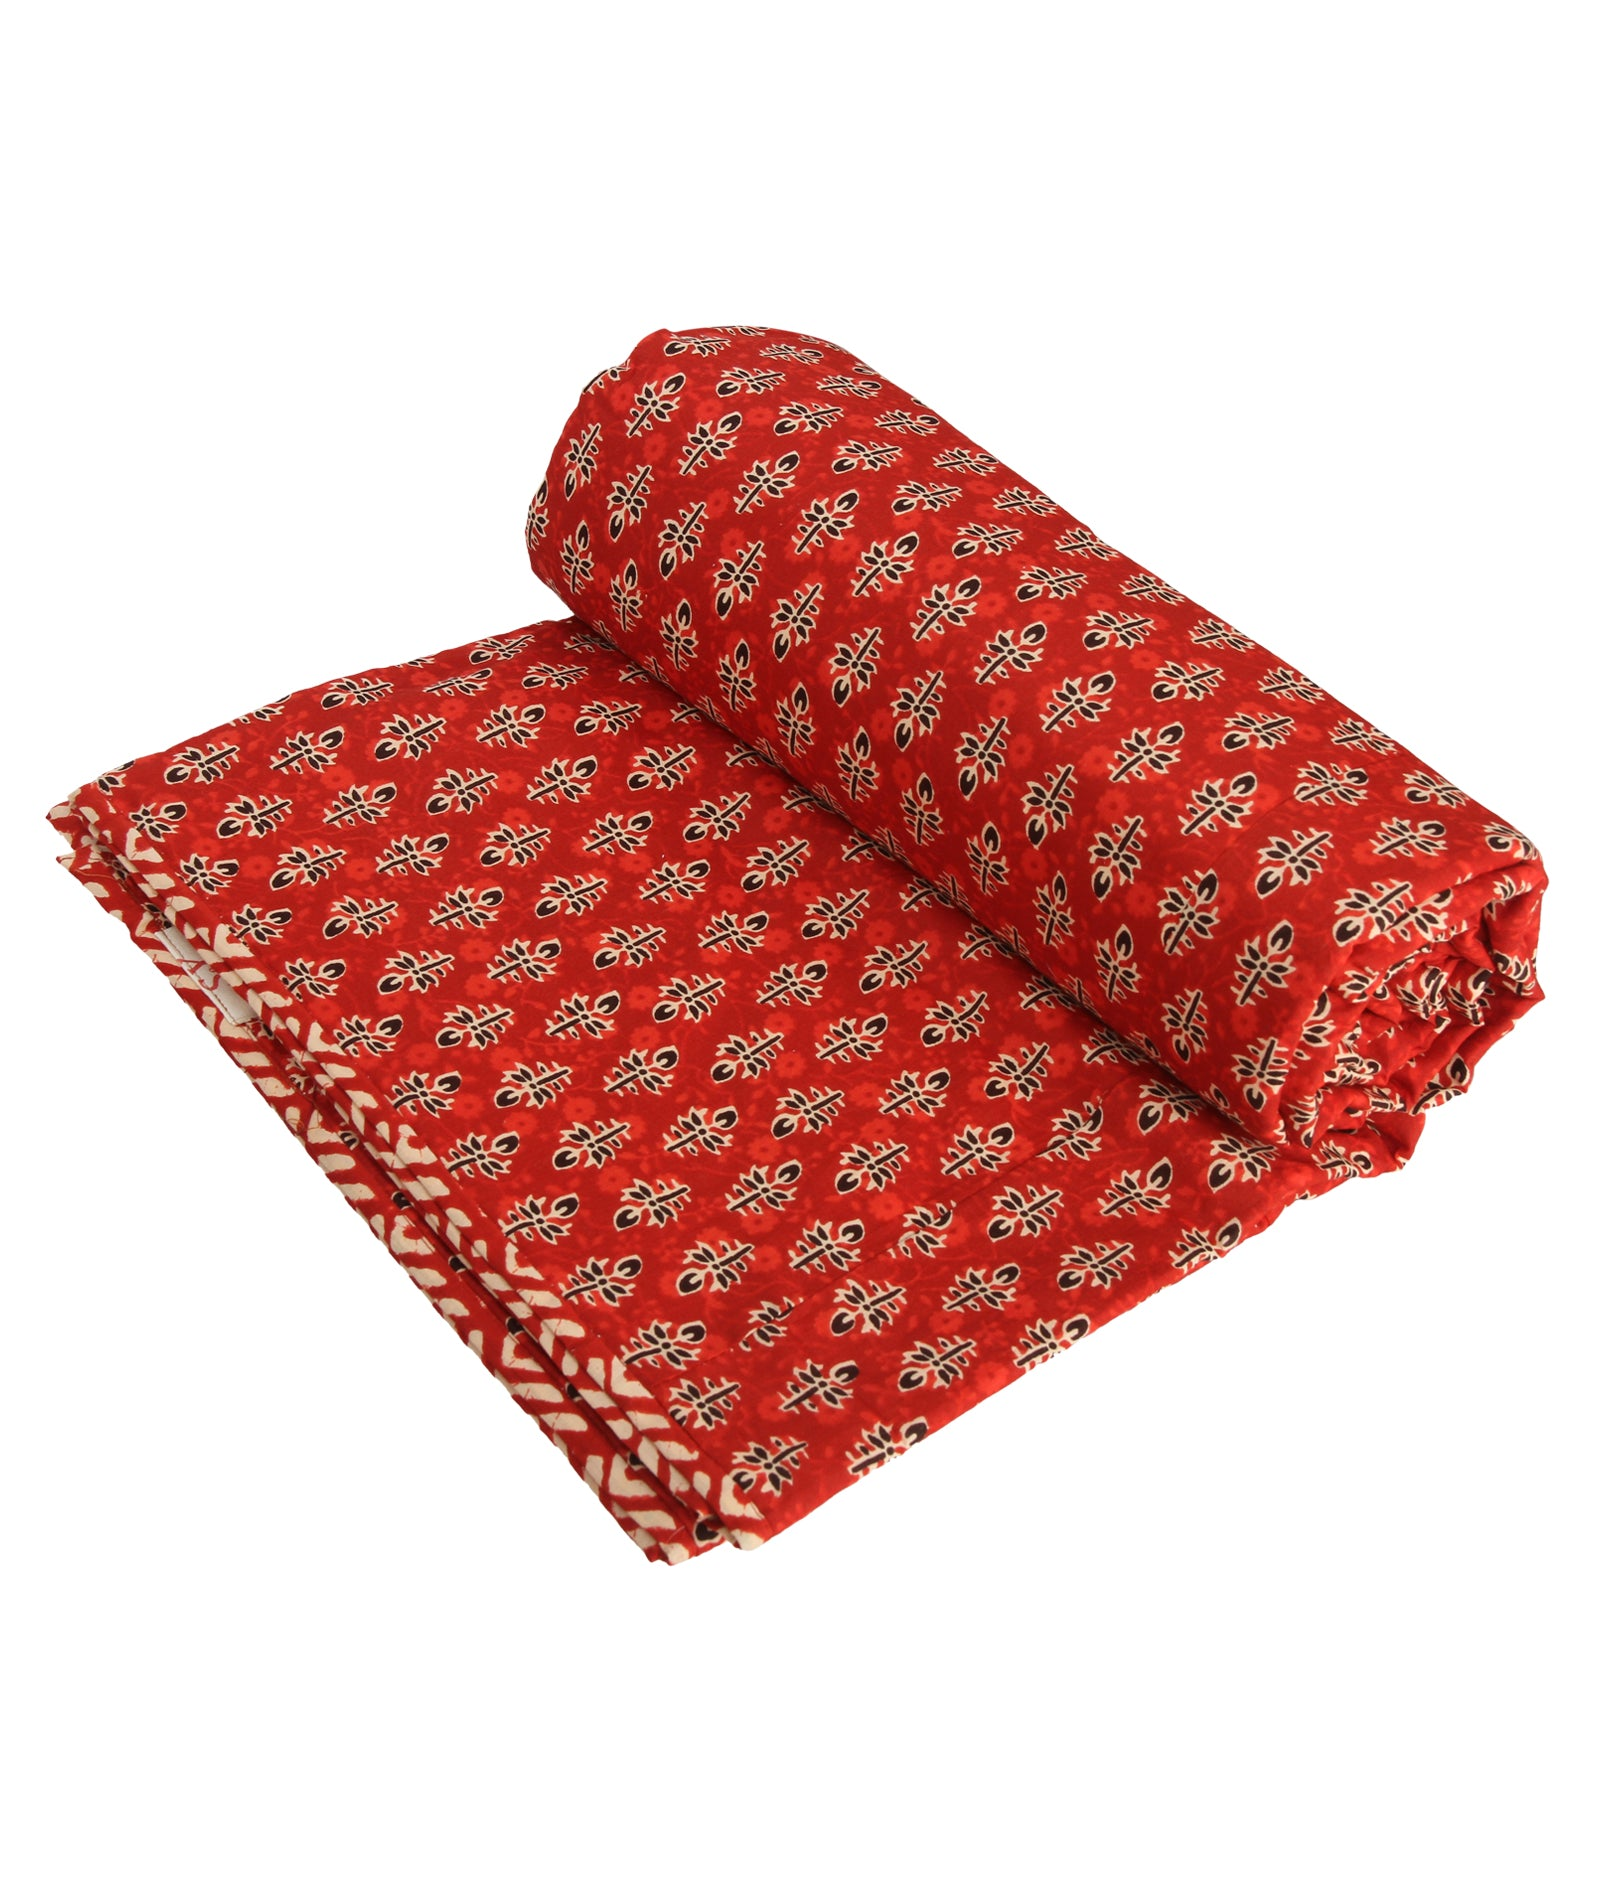 Red Bagru Reversible Jaipuri Block Print Single Dohar (90 x 58 inches)